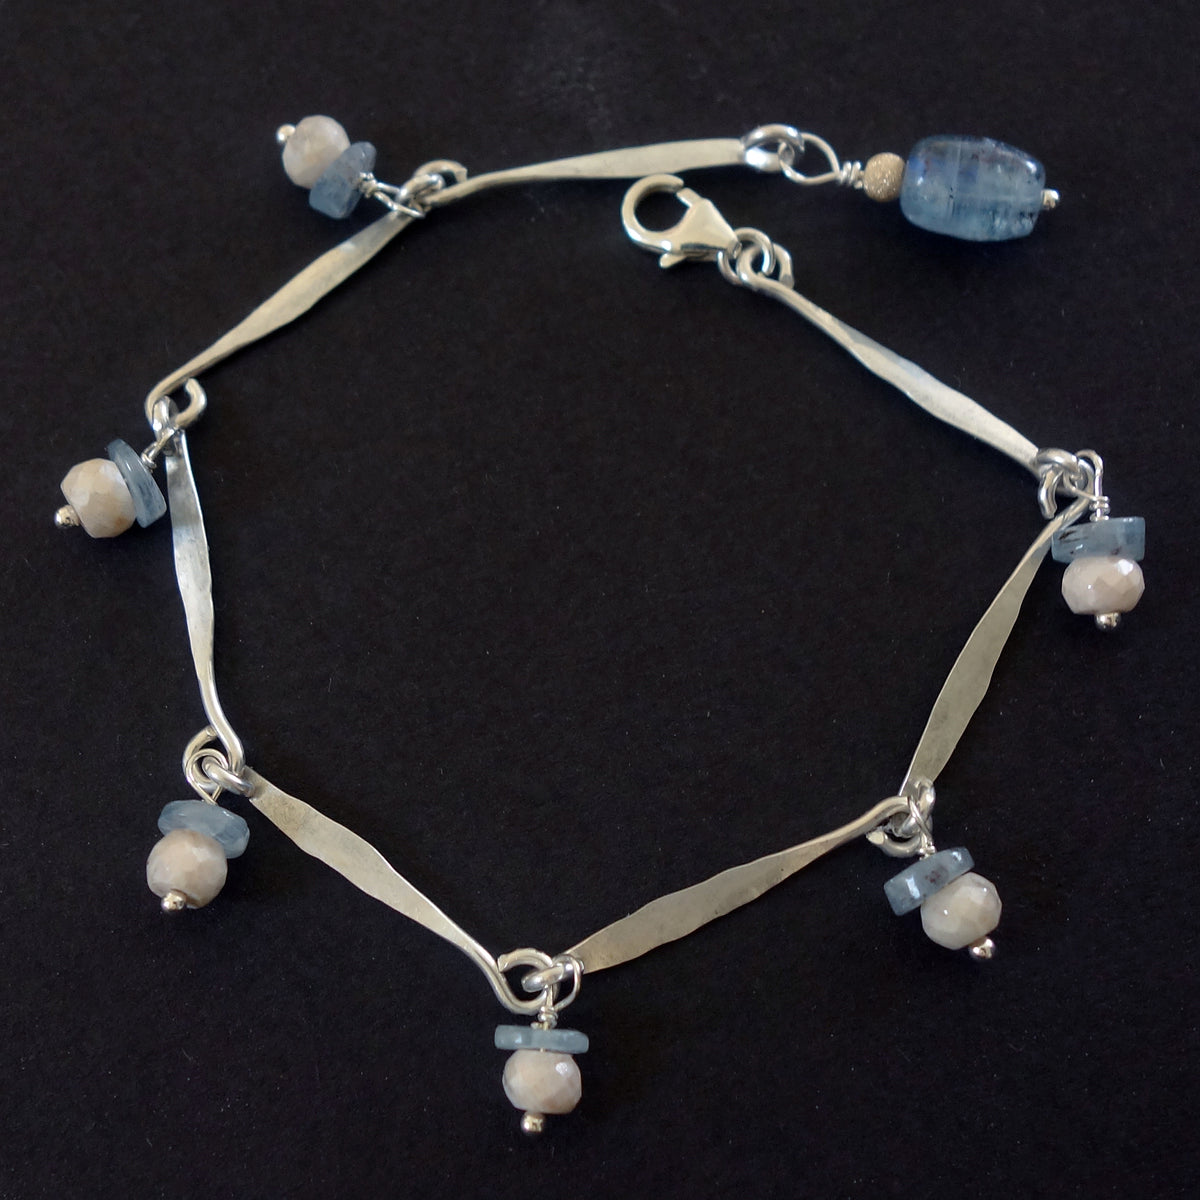 Hand hammered silver and kyanite bracelet